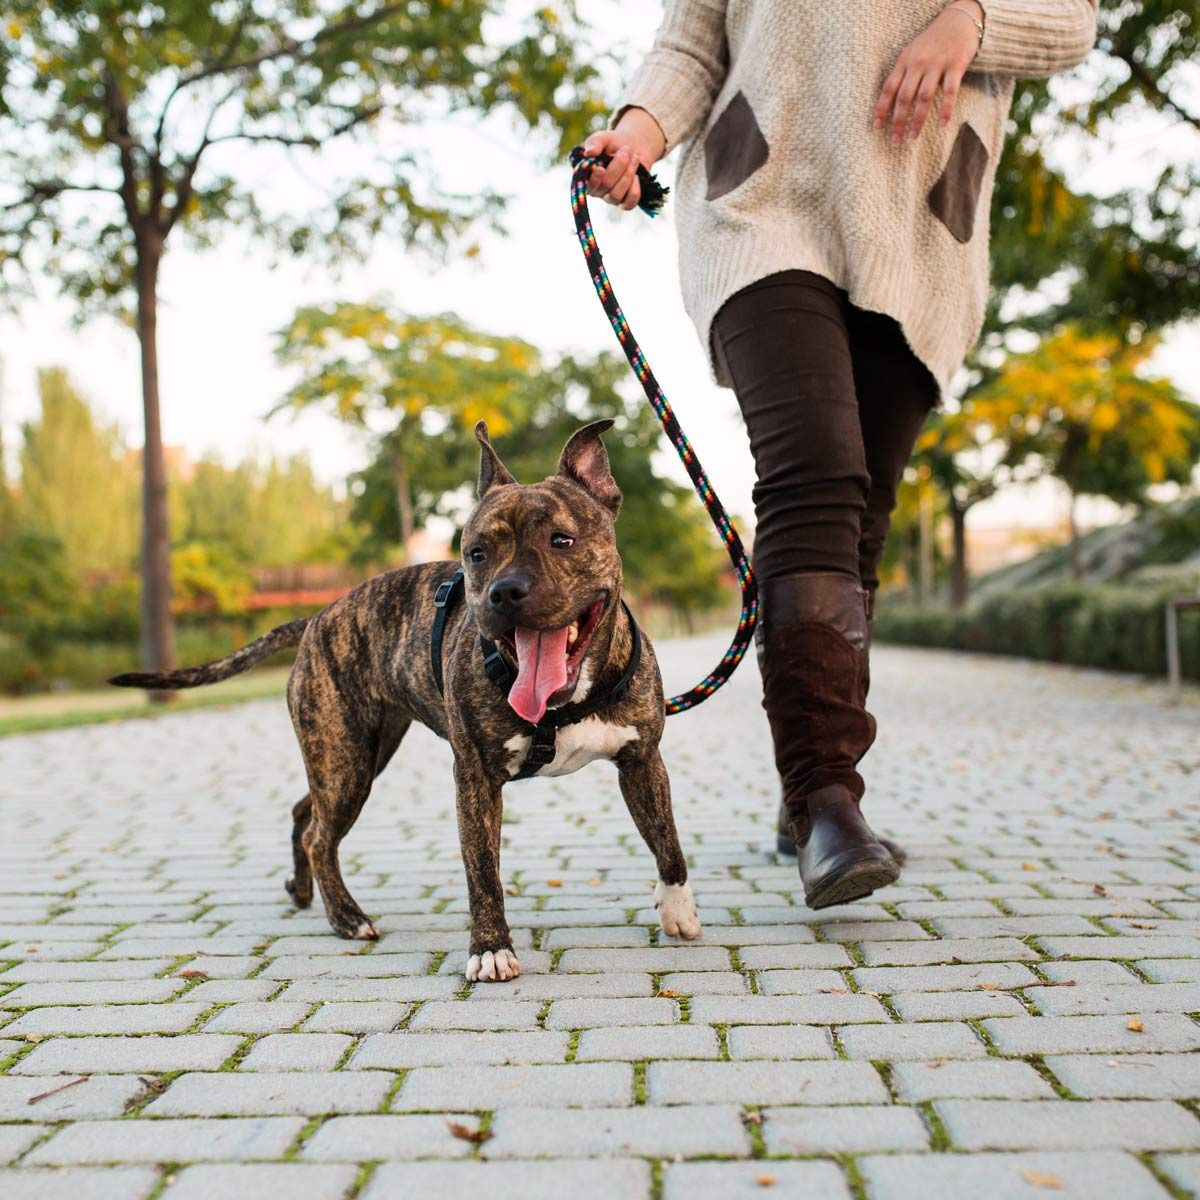 low-view-of-an-anonymous-woman-walking-a-pitbull-at-a-park